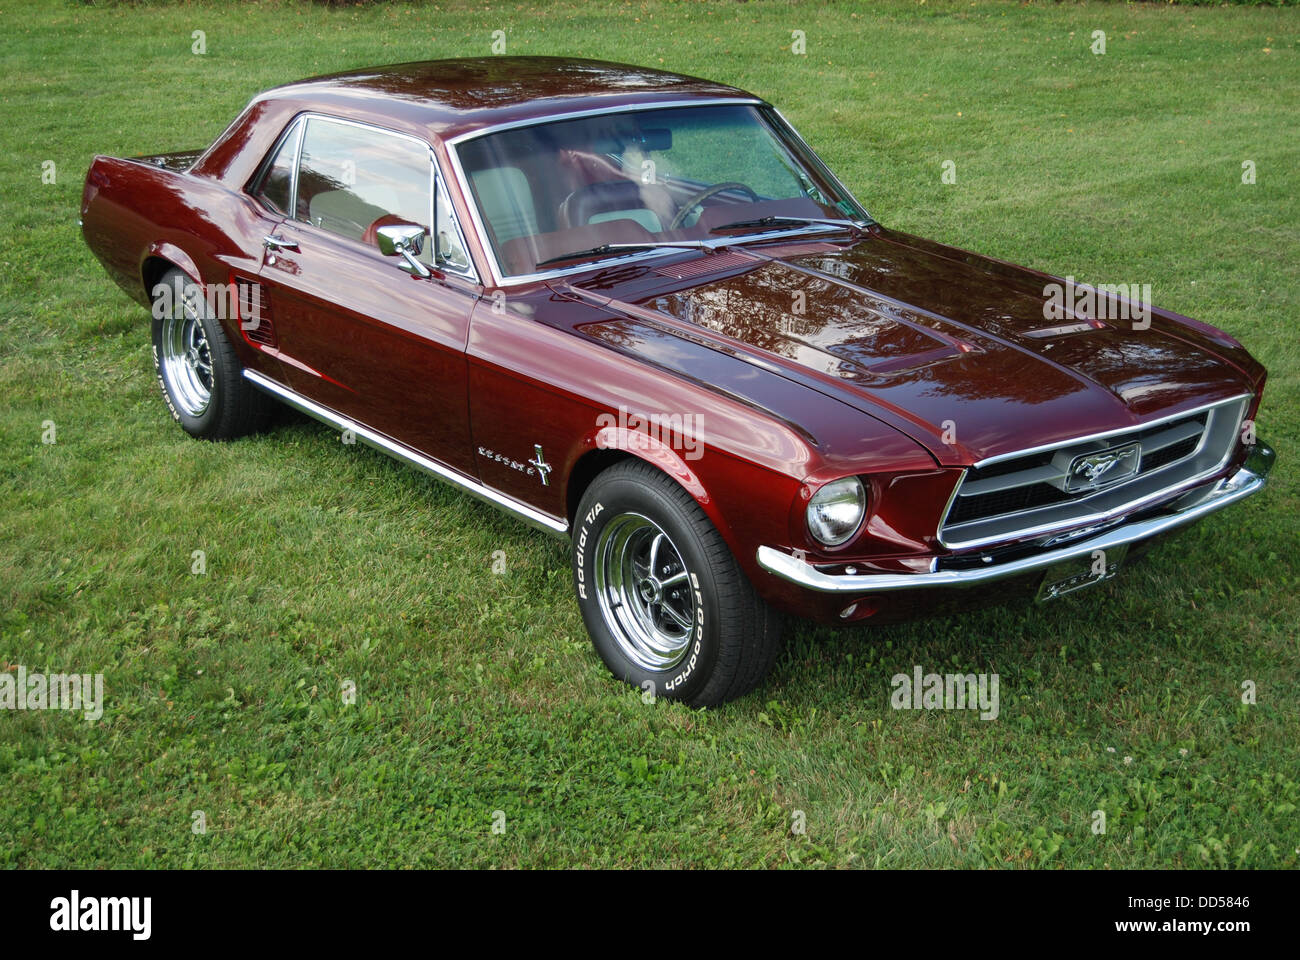 1967 Ford Mustang Stock Photos & 1967 Ford Mustang Stock Images - Alamy